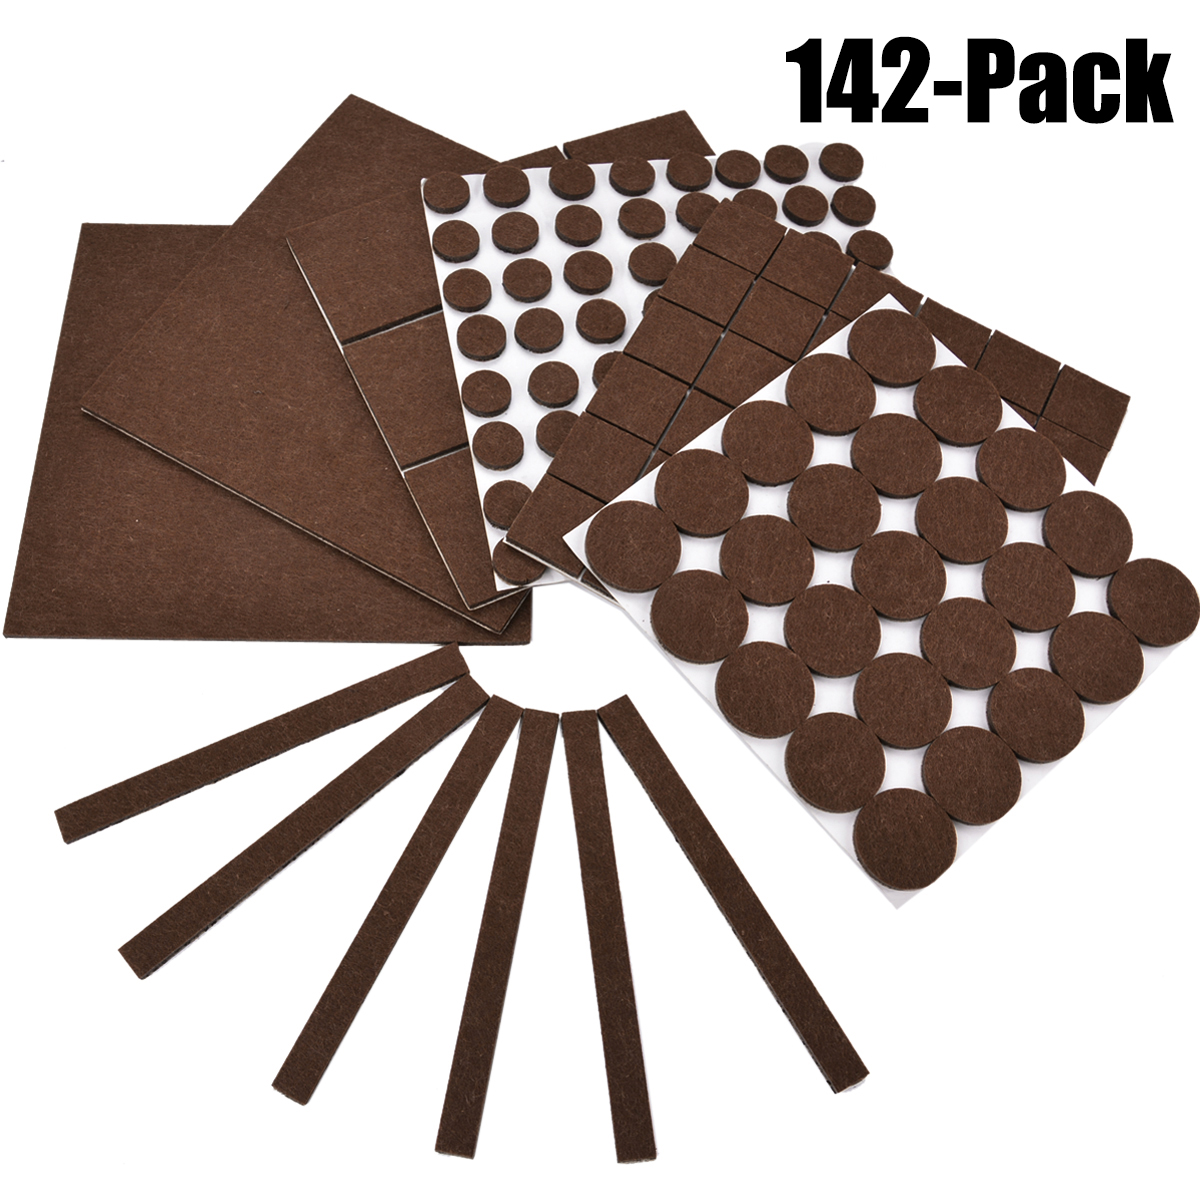 Charmant 142Pcs Self Stick Furniture Felt Pads Heavy Duty Noise Dampening Clear  Rubber Bumpers Floor Scratch